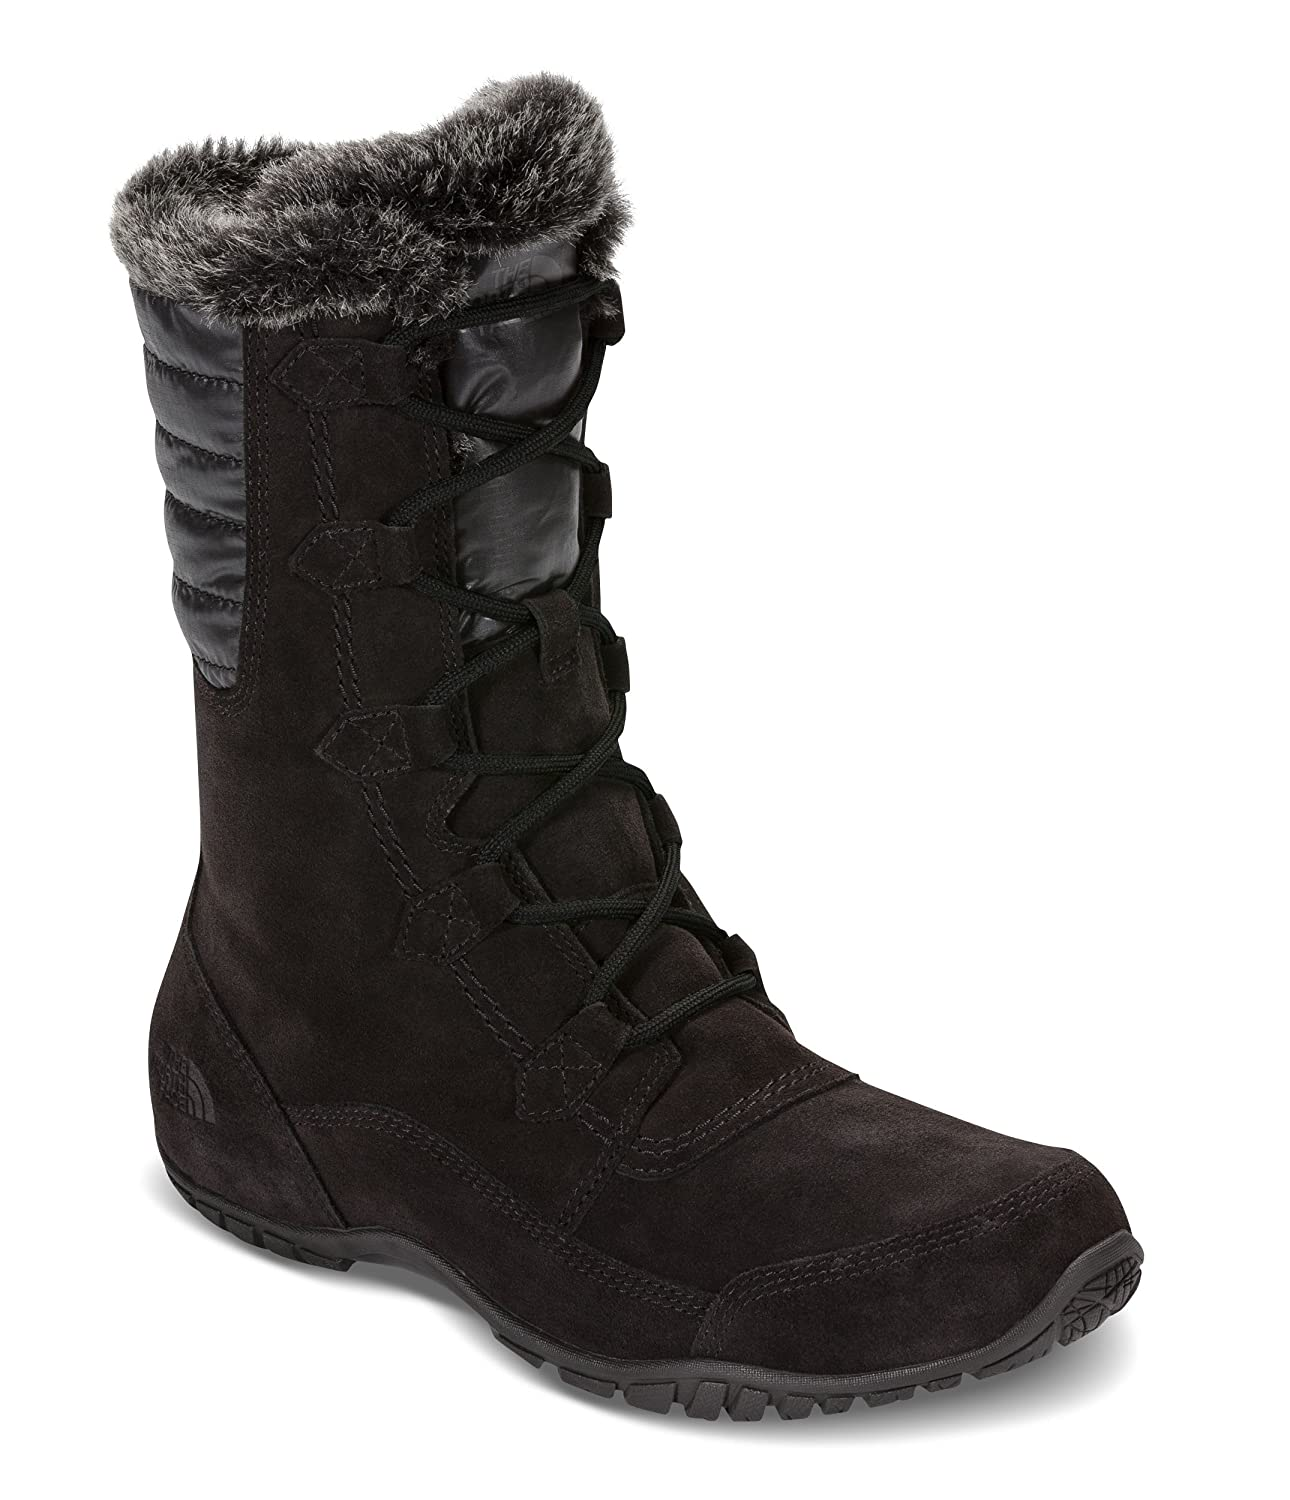 W Nuptse Purna II, Botas de Nieve para Mujer, Negro (TNF Black/Beluga Grey Yxw), 36 EU The North Face